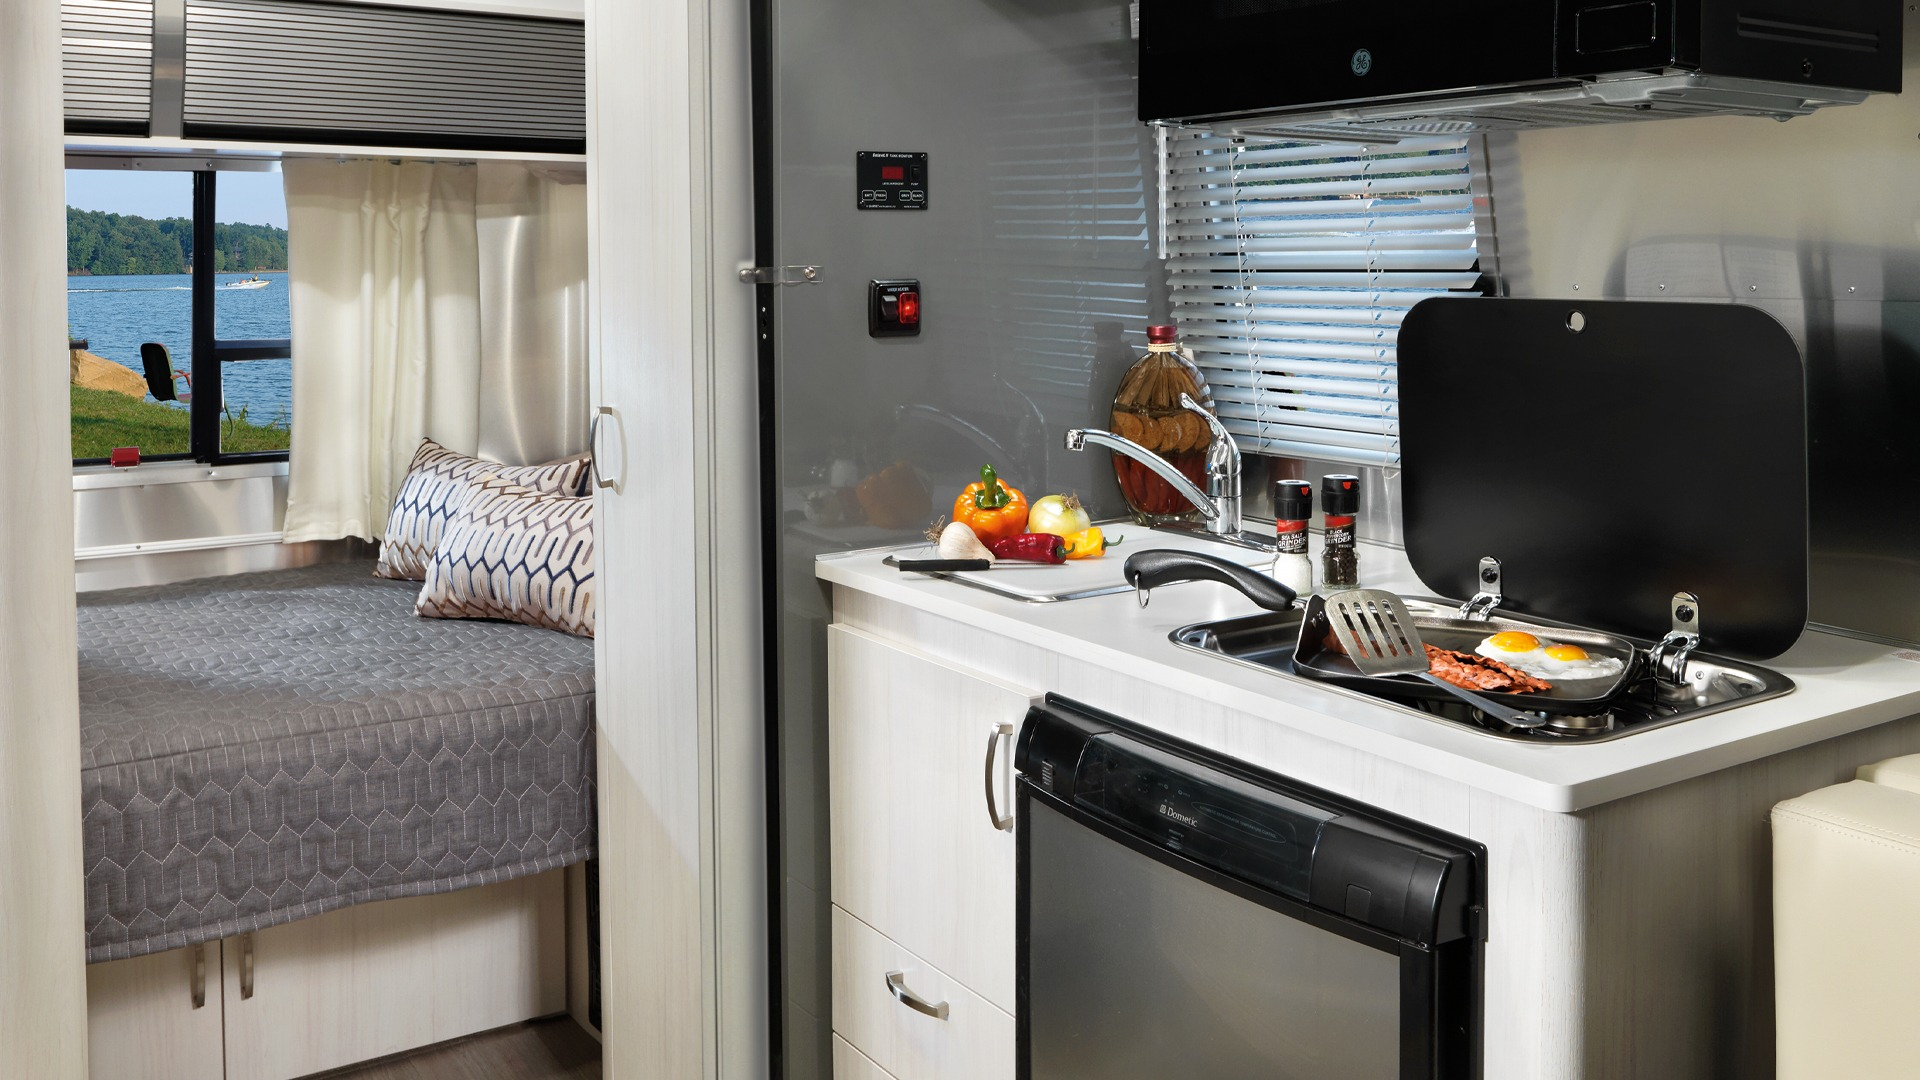 Kitchen is equipped with a two burner stove, refrigerator, sink and microwave. Airstream Sport 2019